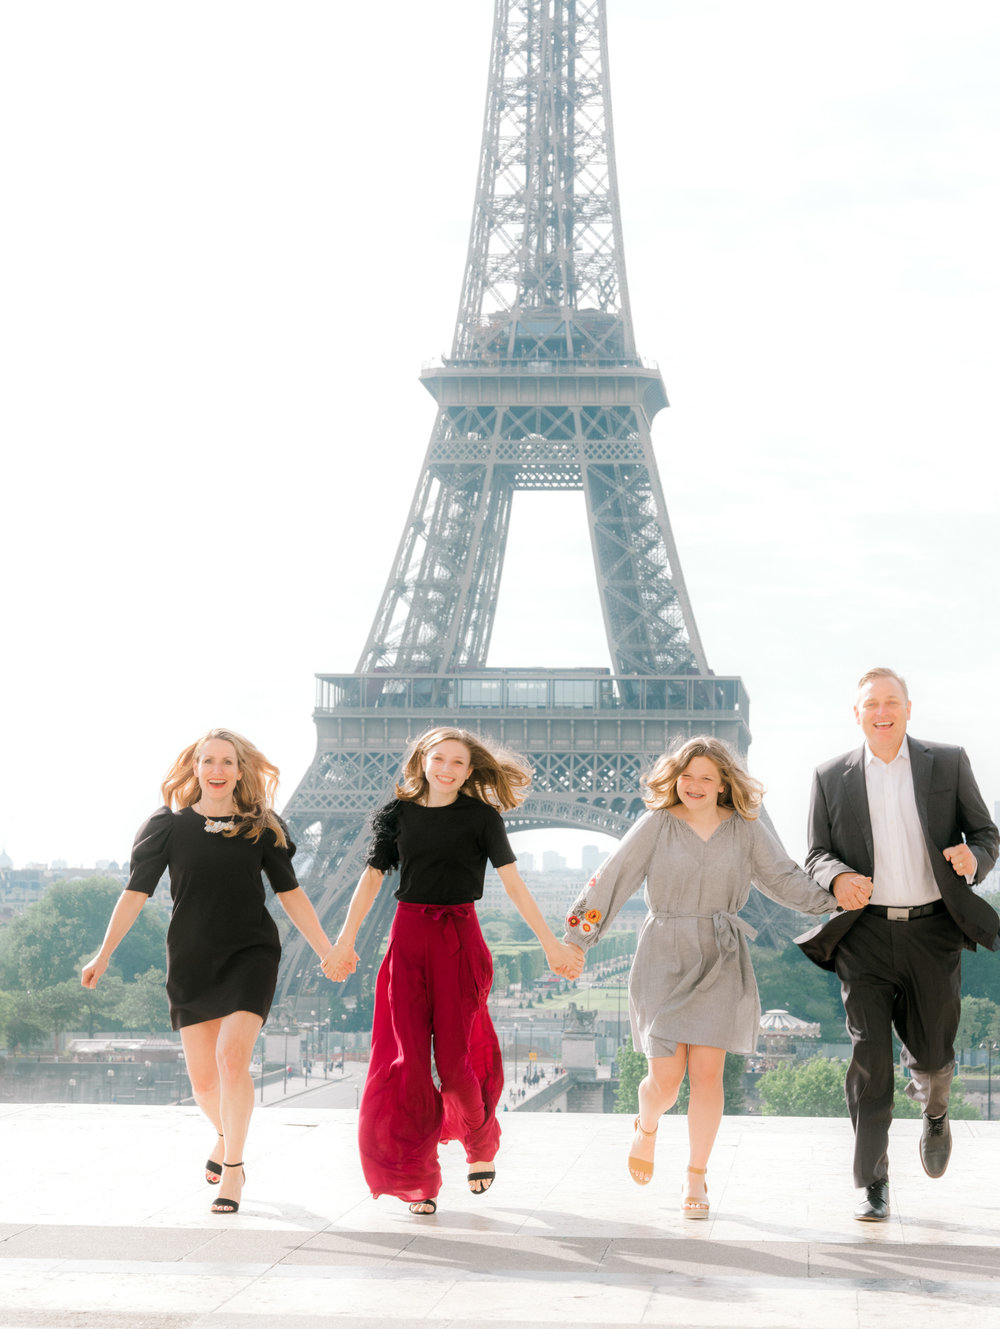 A sophisticated, classy family photo session at the Eiffel Tower -